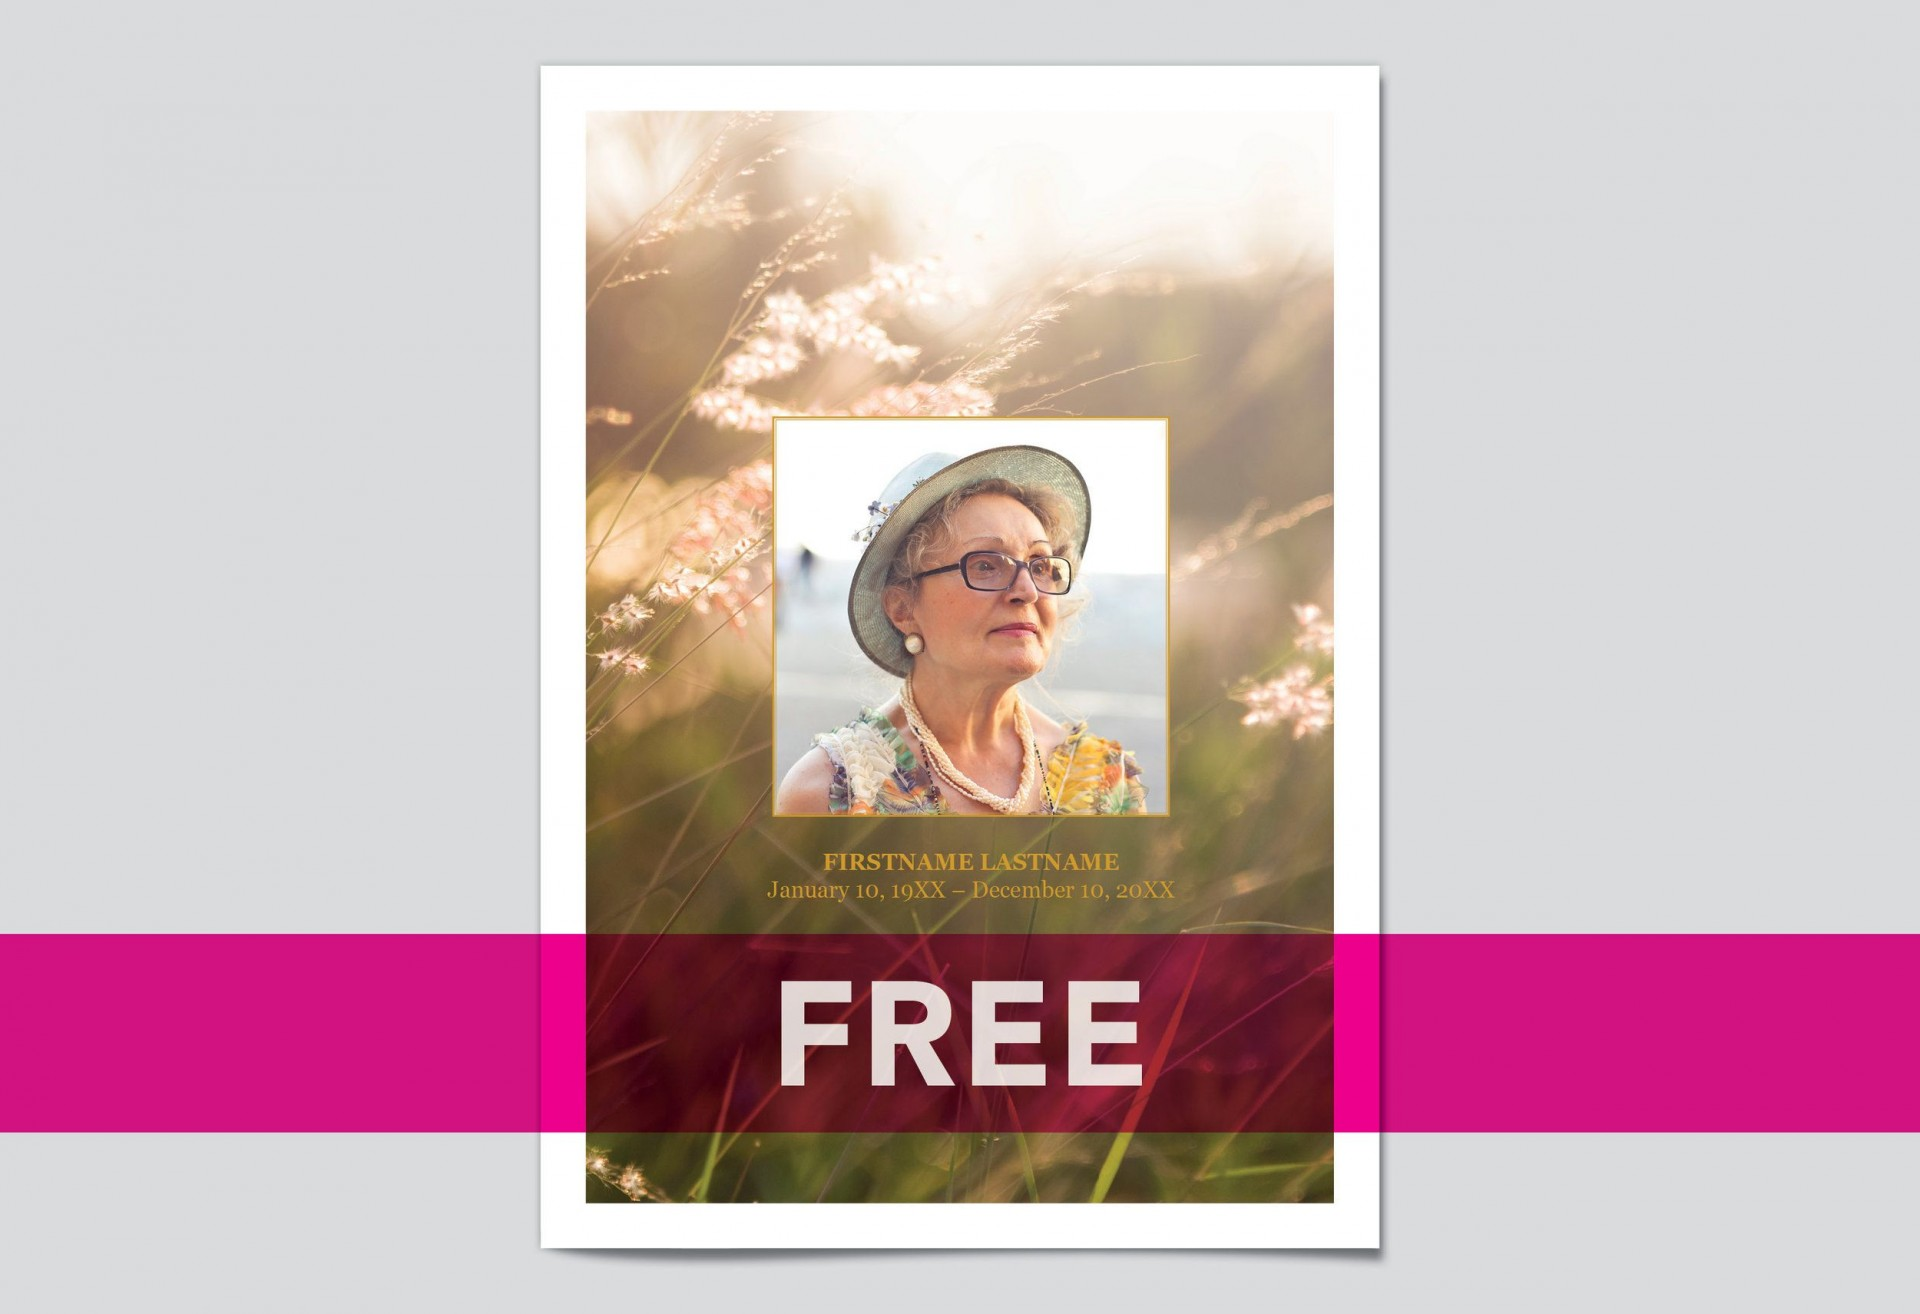 008 Wonderful Free Celebration Of Life Program Template Download Concept 1920